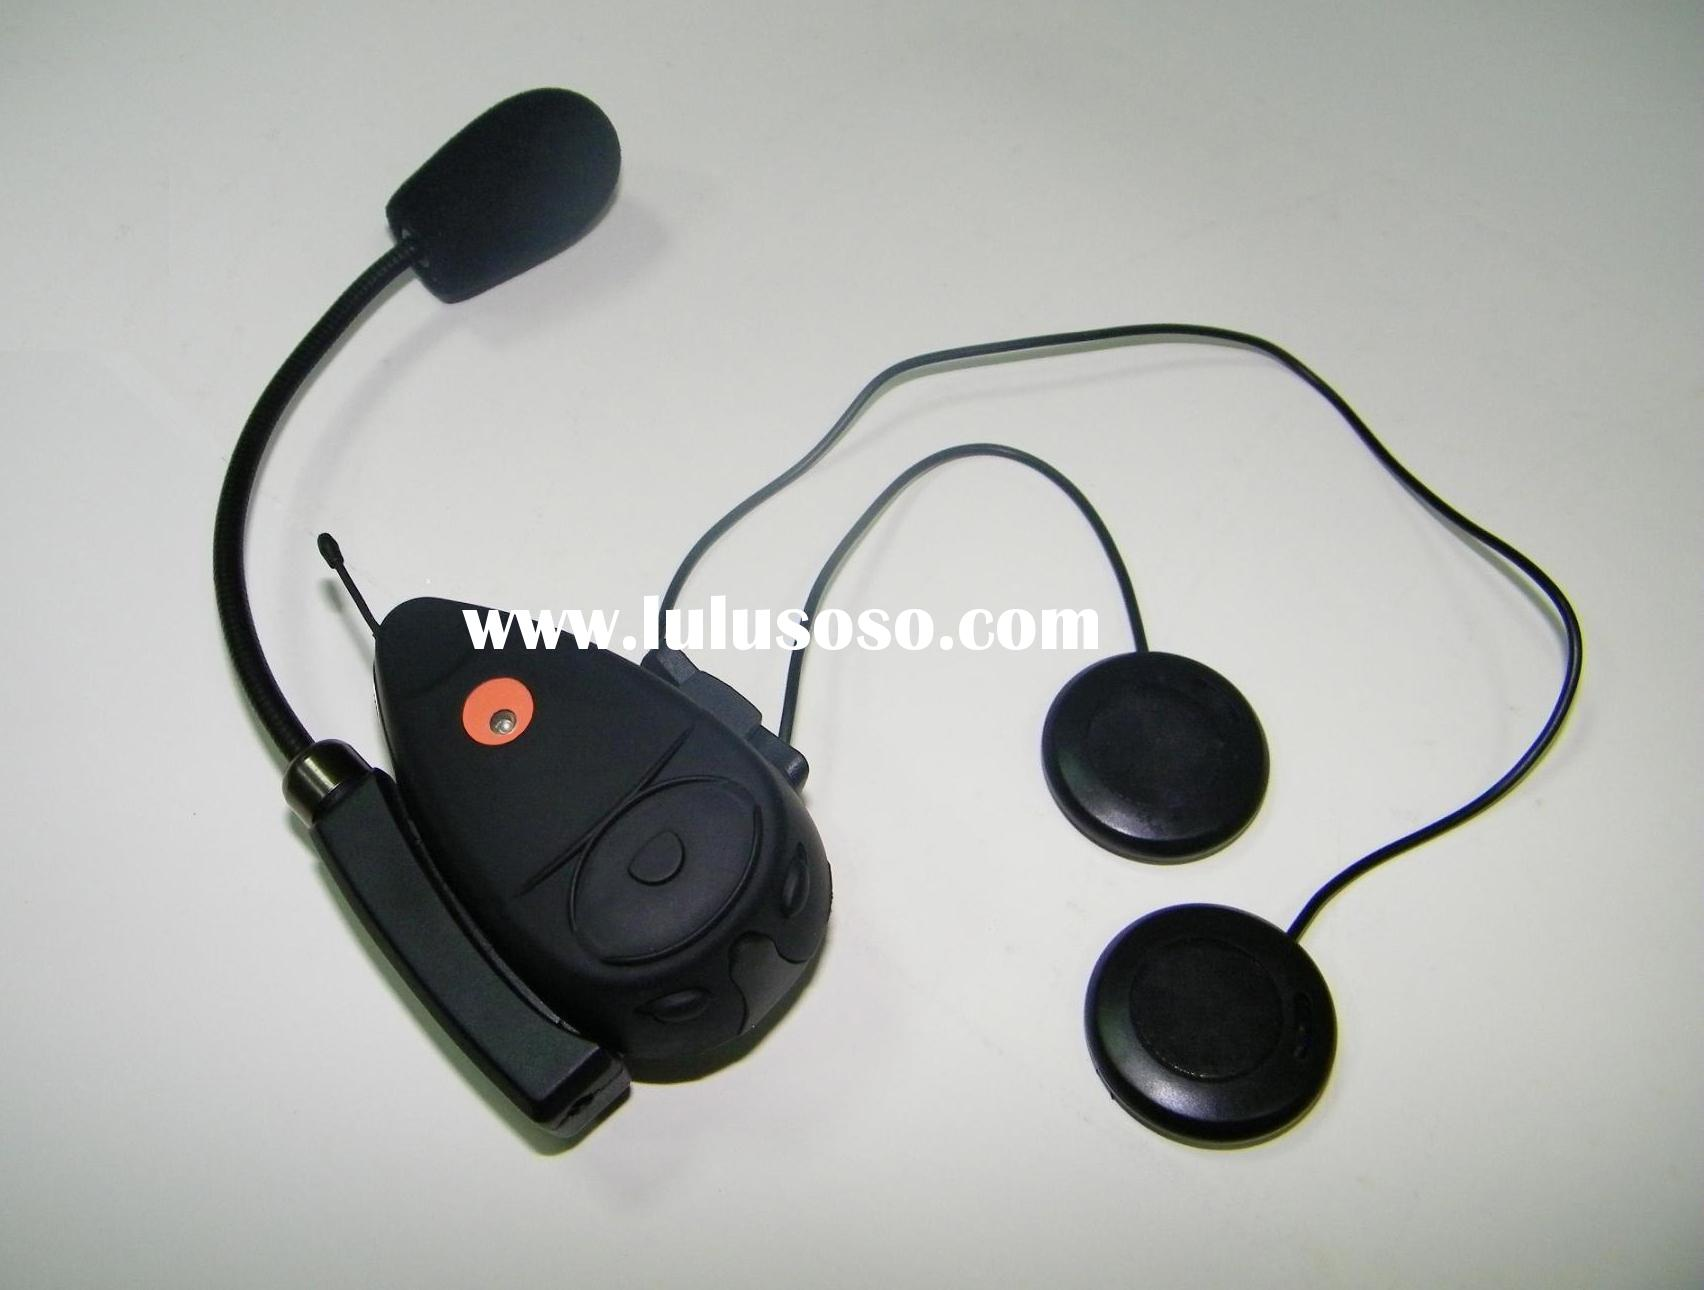 bluetooth motorcycle helmet headset reviews | LuLuSoSo com